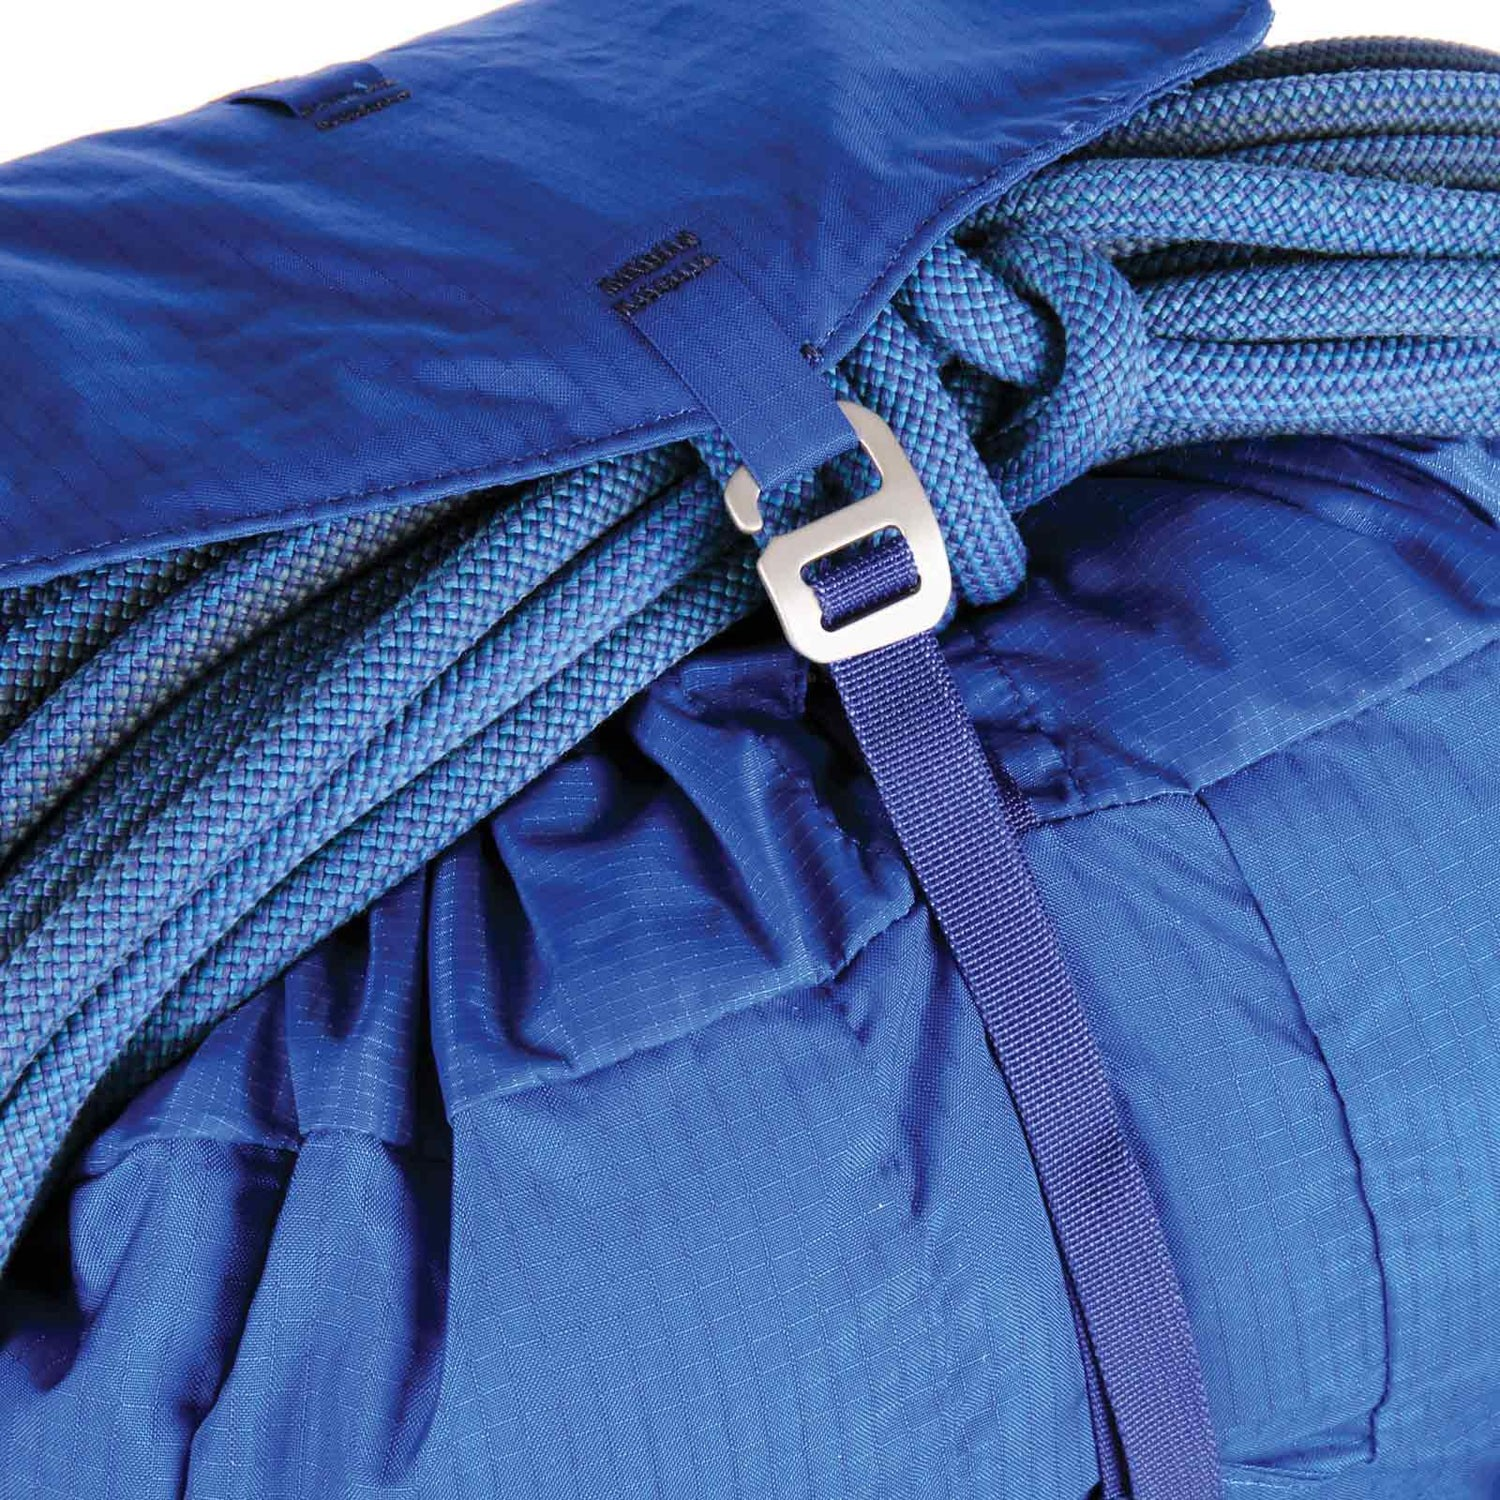 Blue Ice Warthog 45L Rucksack - Turkish Blue - rope holder